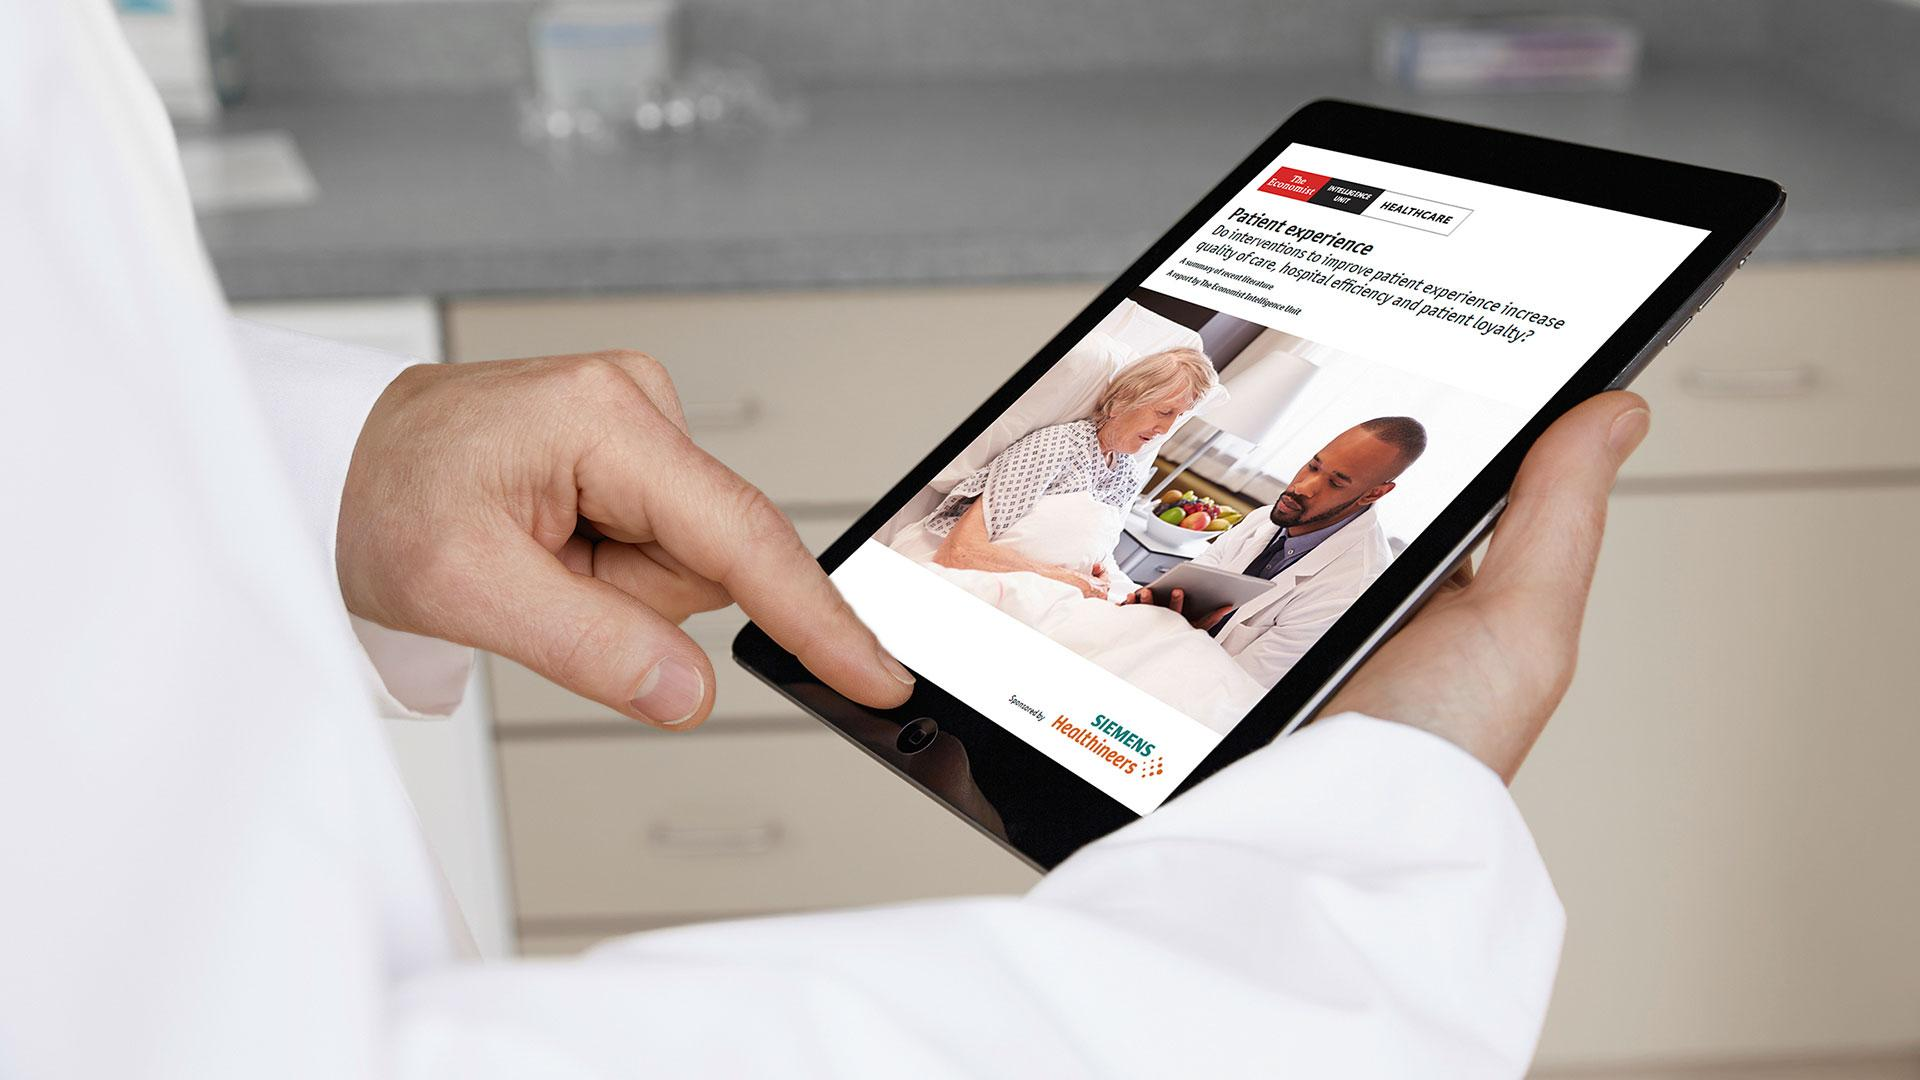 The Economist Intelligence Unit looked into recent literature regarding the effect of measures to improve patient experience in hospitals on patient satisfaction and quality of care.